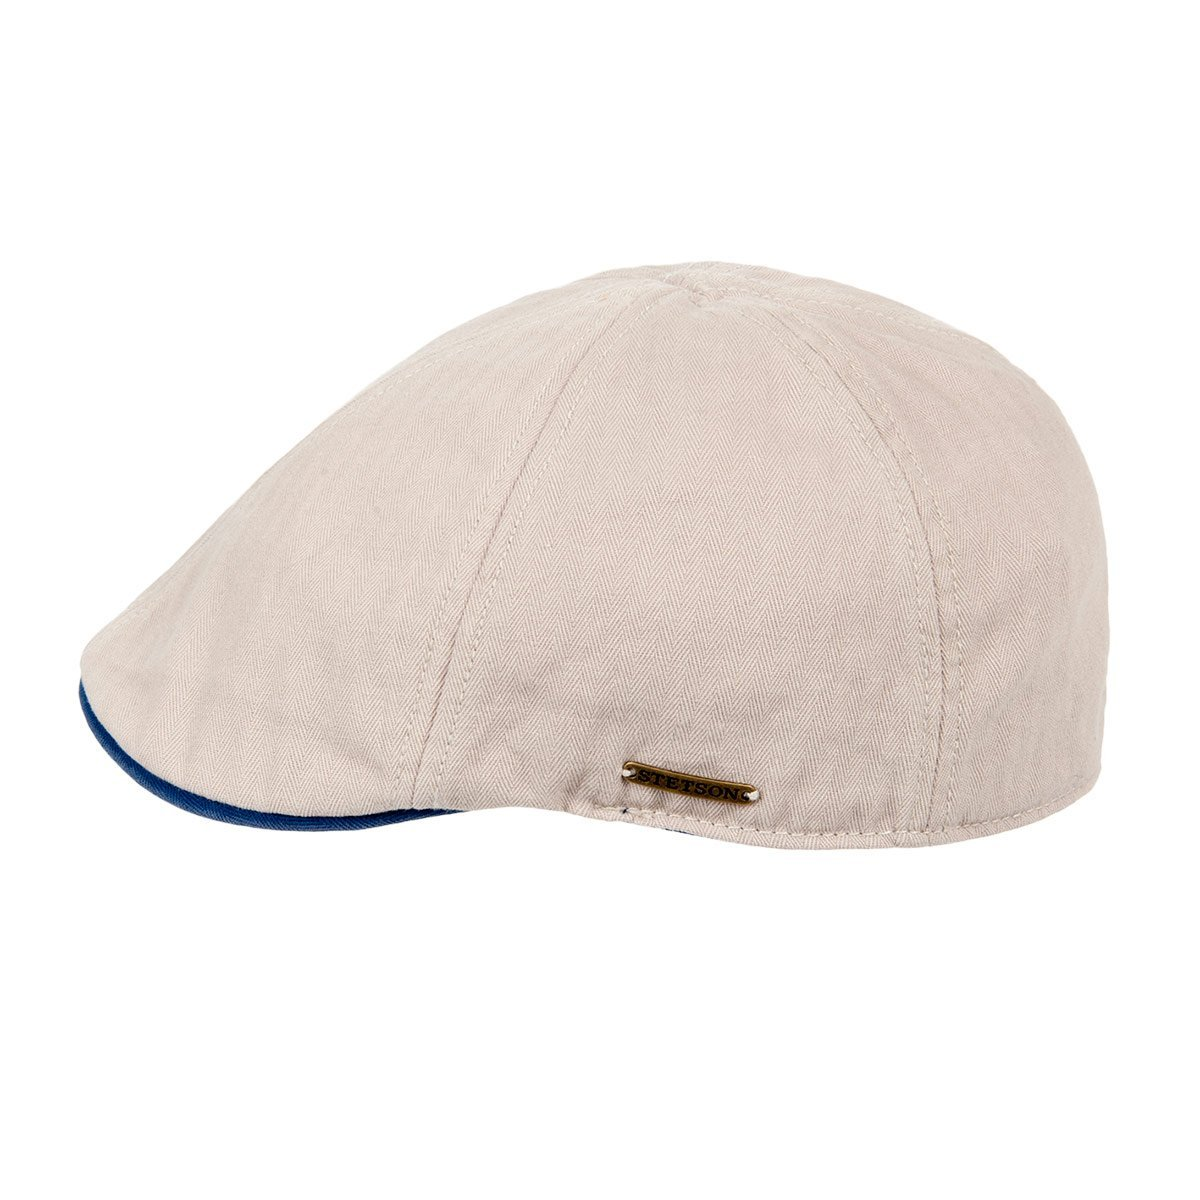 ... golf cappelli » berretto uomo · coppola uomo Texas Cotton by Stetson ... 9bc4e111be14